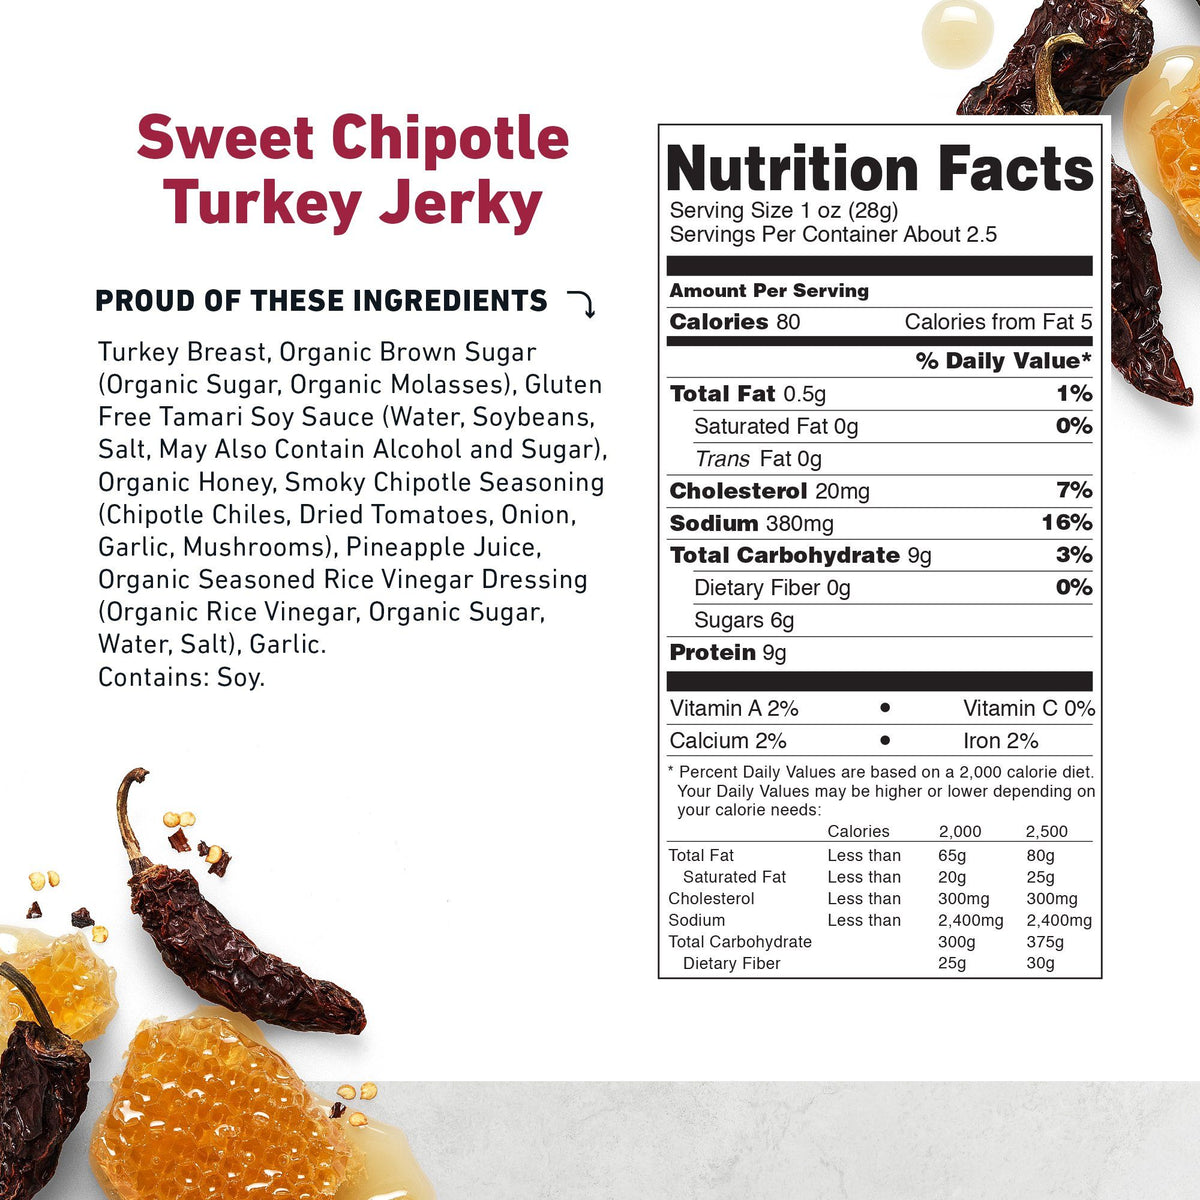 Turkey Jerky Sweet Chipotle Nutritional Information- product carousel image